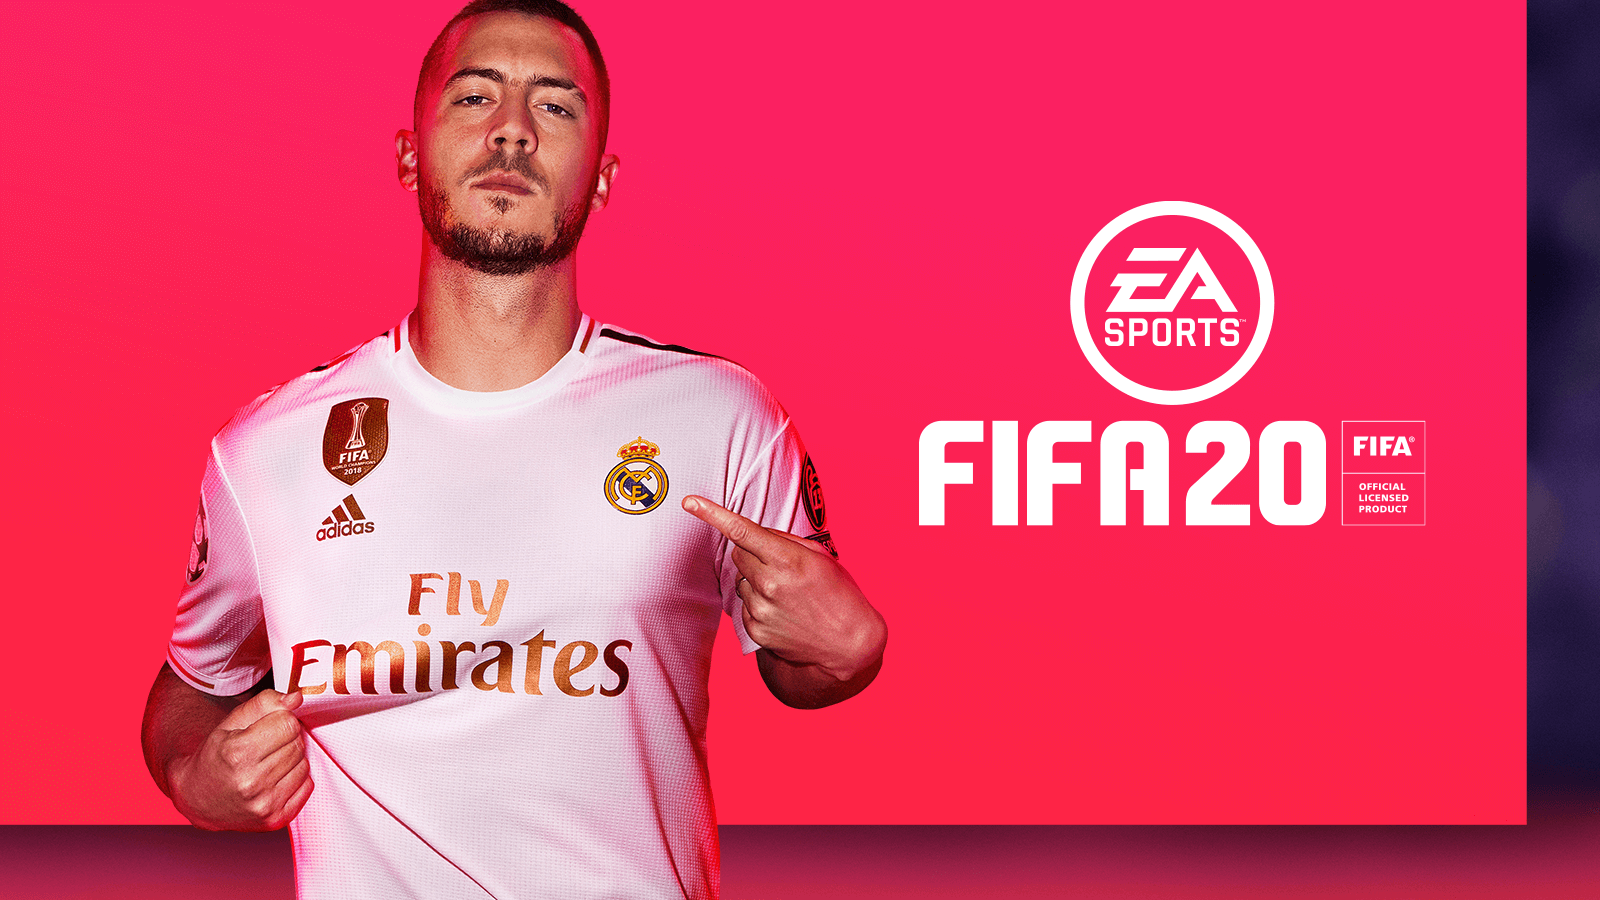 FIFA 20, FIFA 19, FUT Points, transfer, carryover guide, FIFA Points